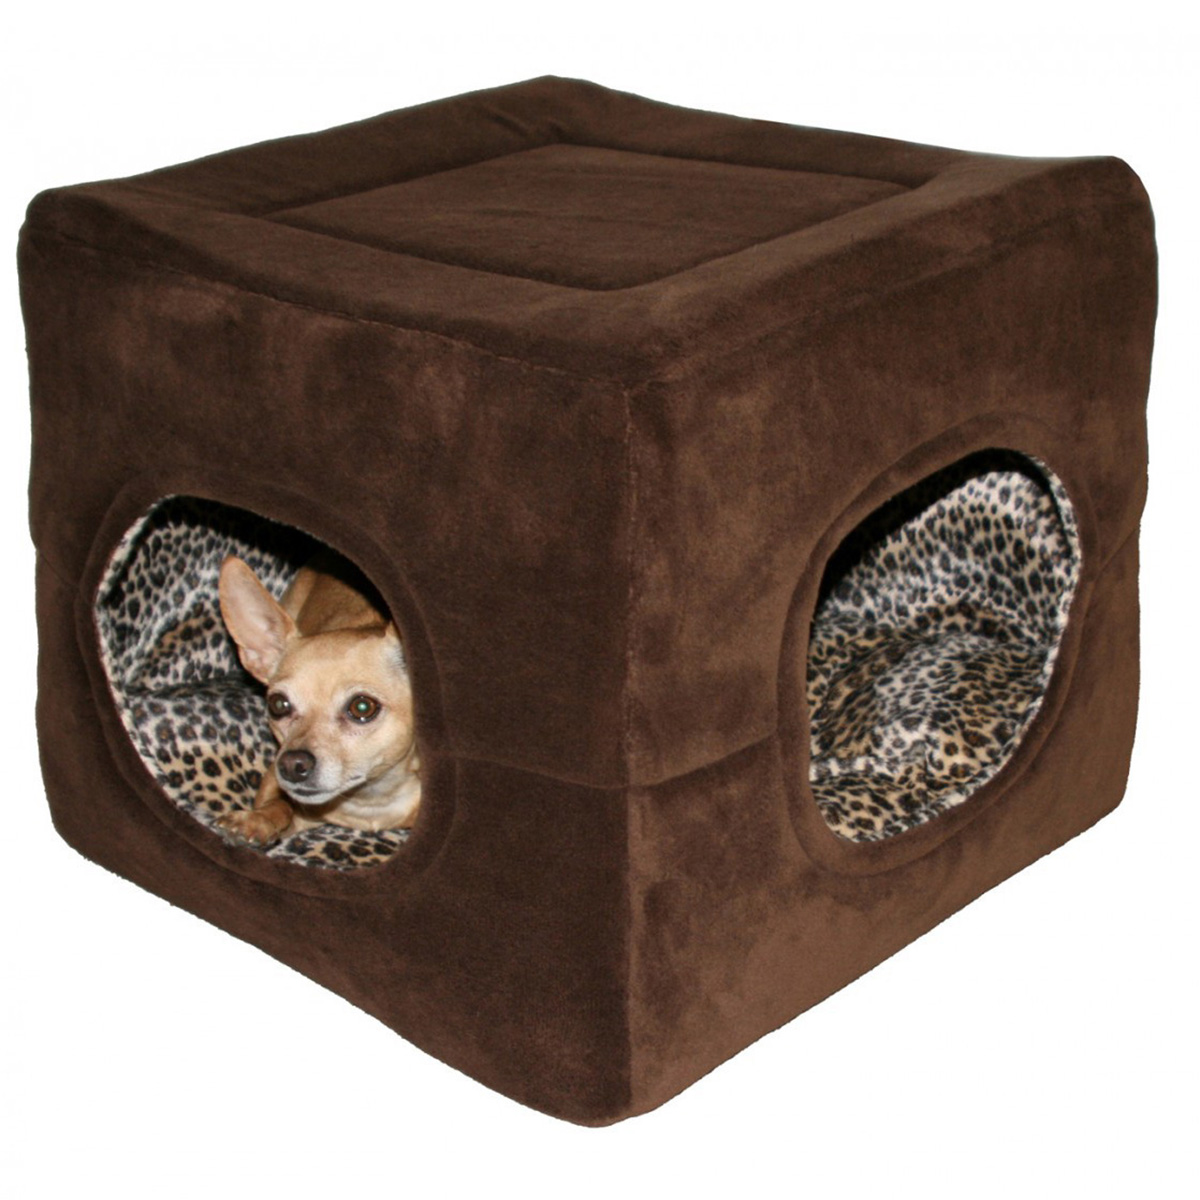 Deluxe 2 Door Pop Up Dog Tent/Bed by Hip Doggie - Chocolate Brown with Same Day Shipping | BaxterBoo  sc 1 st  BaxterBoo.com & Deluxe 2 Door Pop Up Dog Tent/Bed by Hip Doggie - Chocolate Brown ...